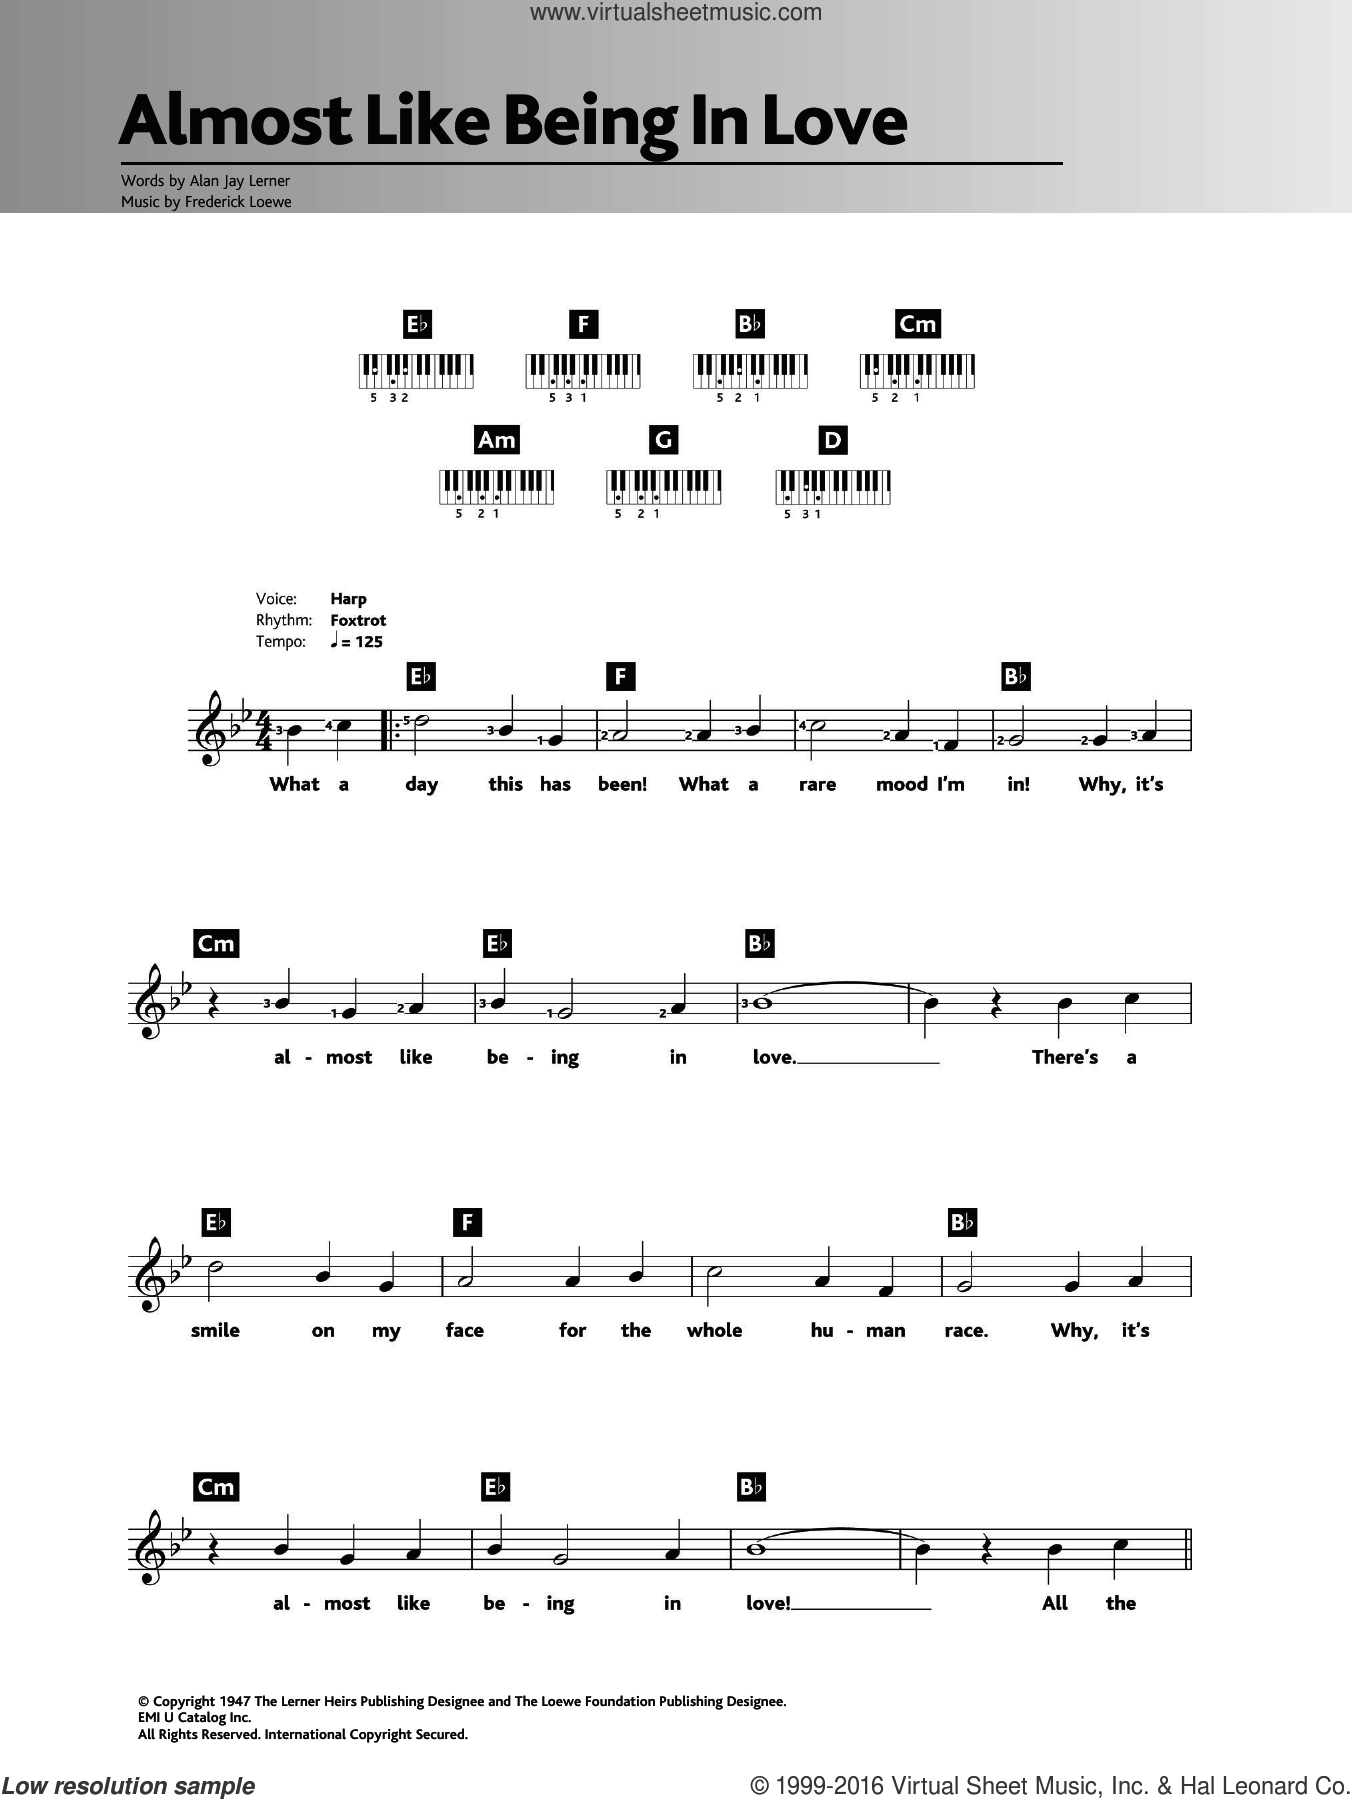 Almost Like Being In Love sheet music for piano solo (chords, lyrics, melody) by Frank Sinatra, Frederick Loewe and Alan Jay Lerner. Score Image Preview.